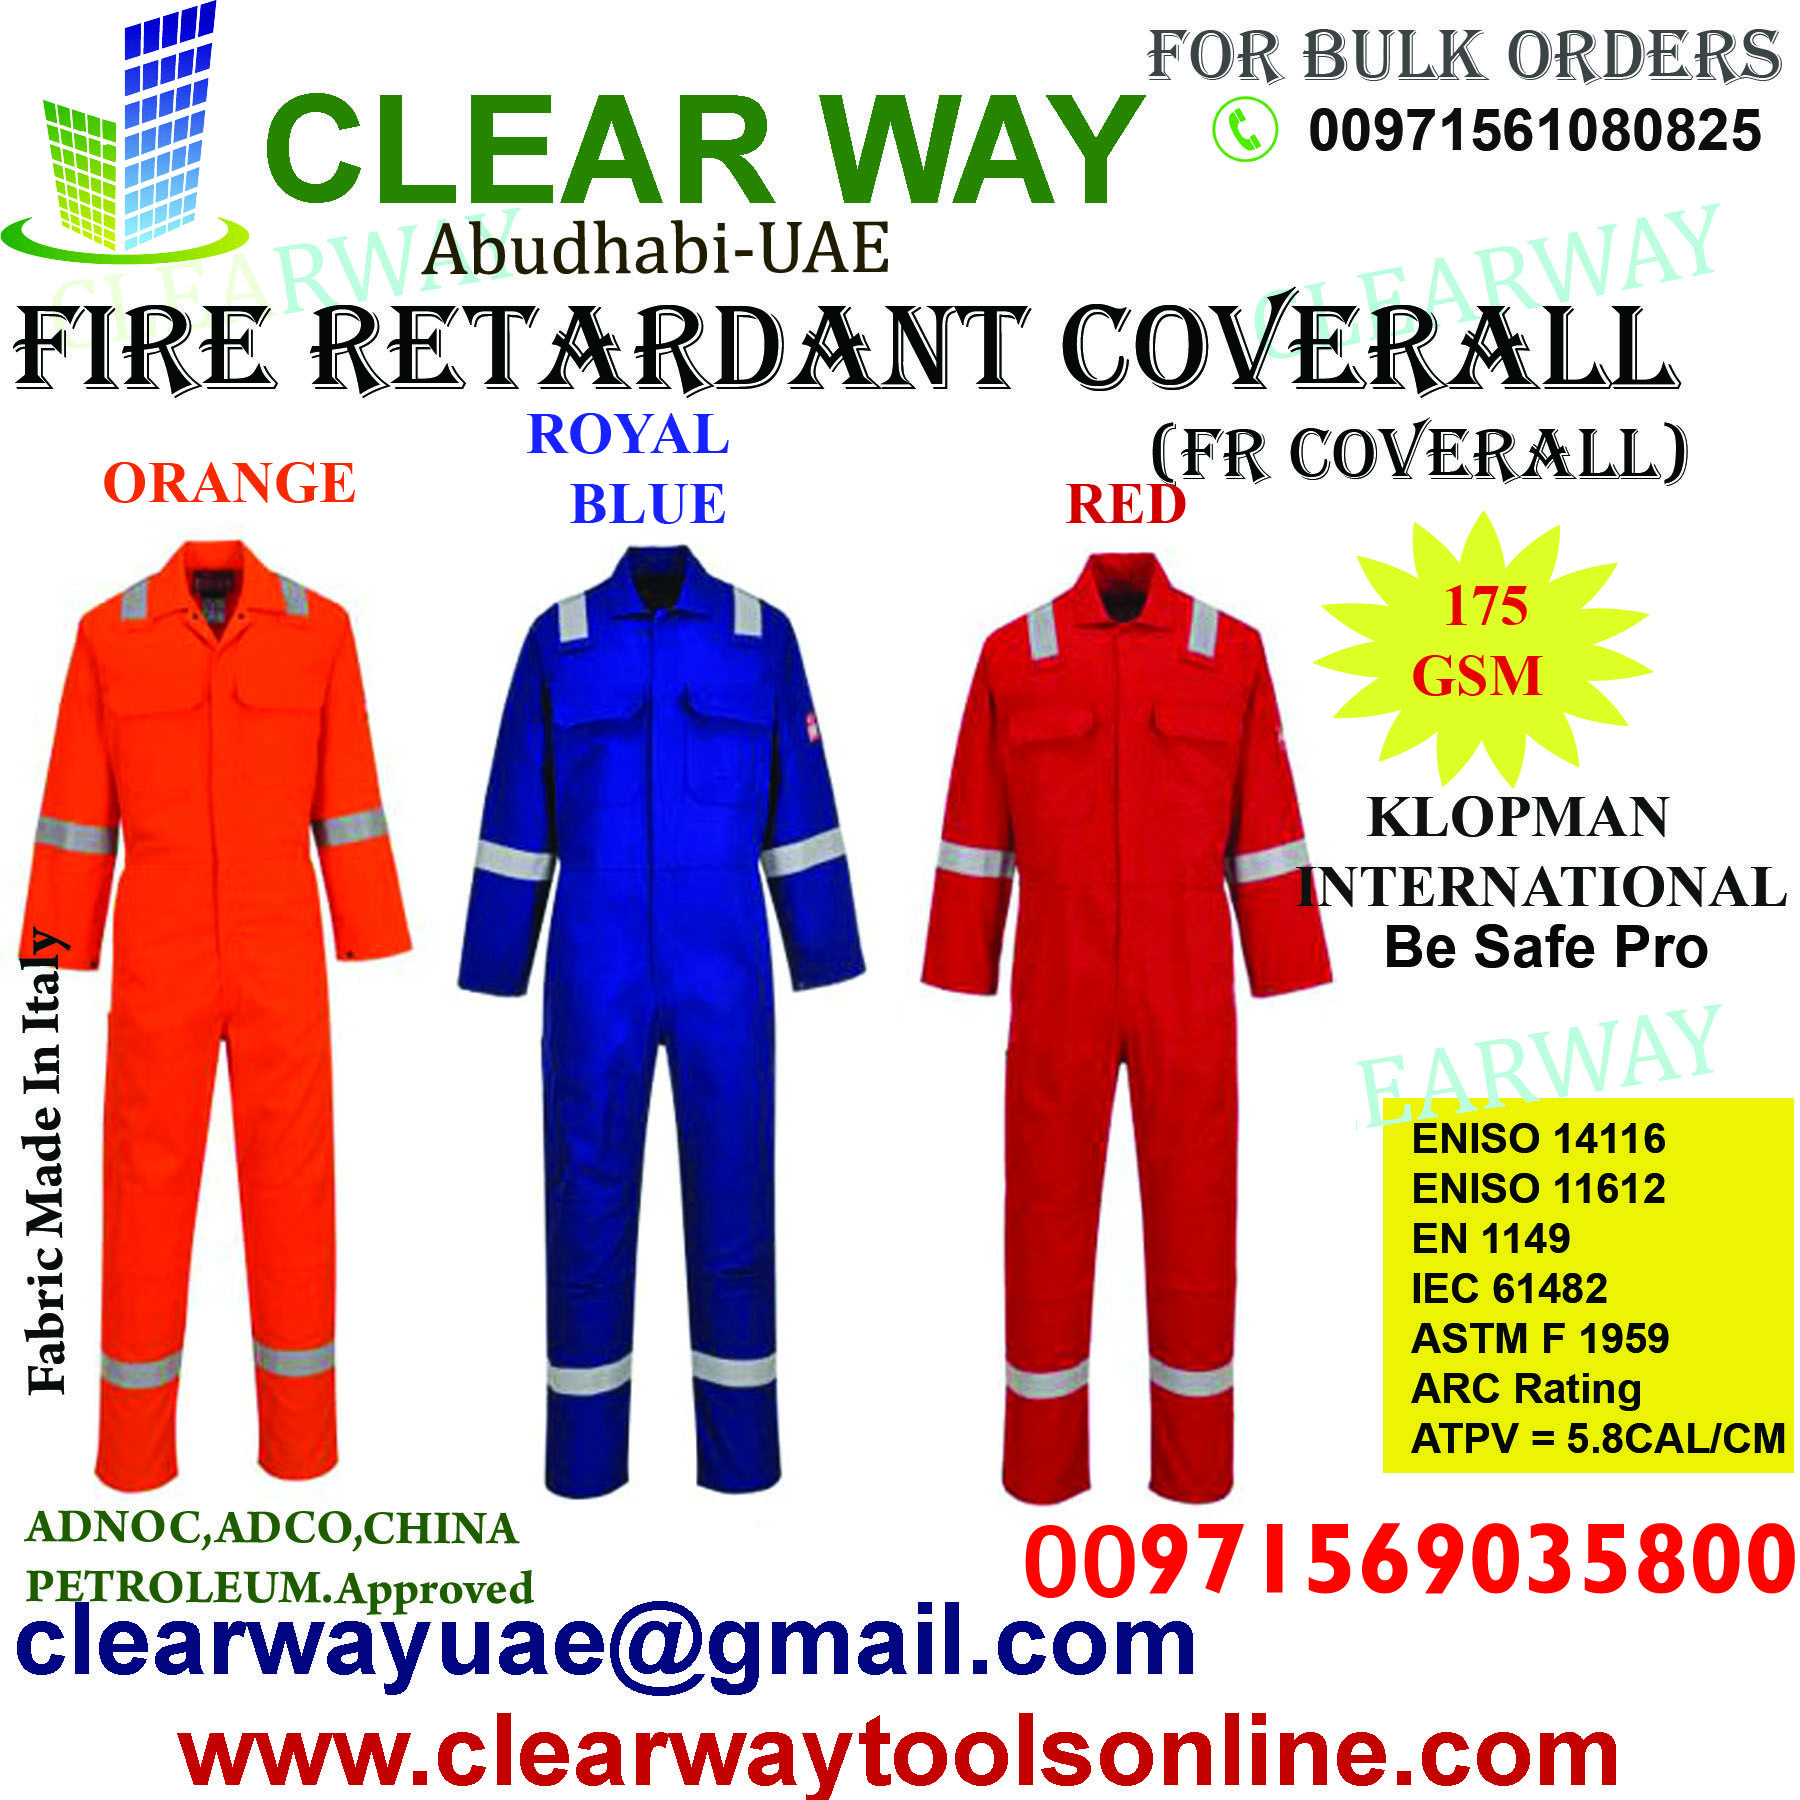 Klopman International Fire Retardant Coverall Fr Coverall Be Safe Pro Dealer In Mussafah Abudhabi Coveralls First Aid Kit Contents Fire Retardant